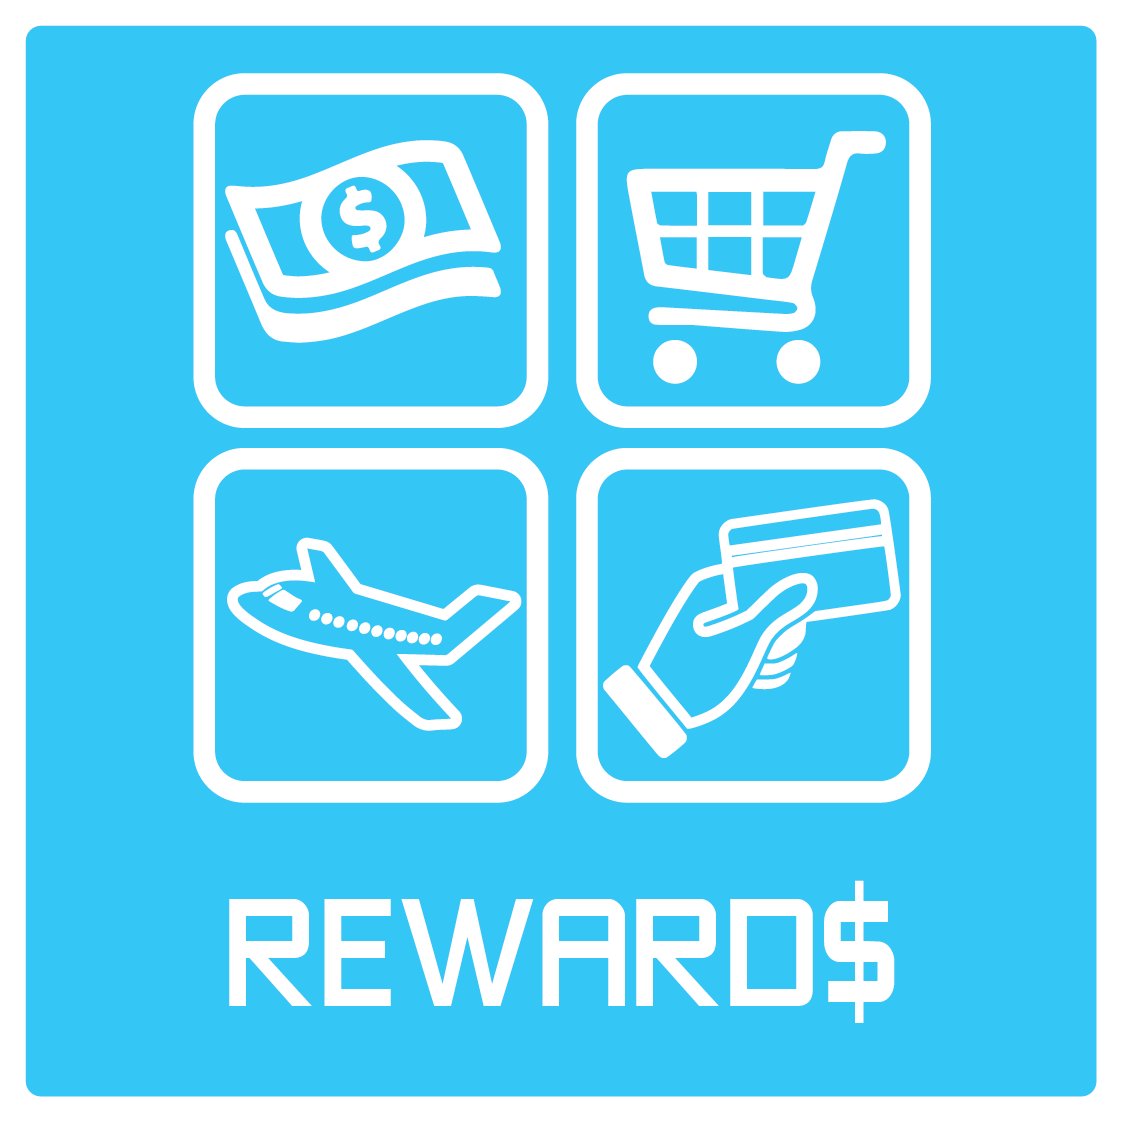 Icon and Text: Rewards